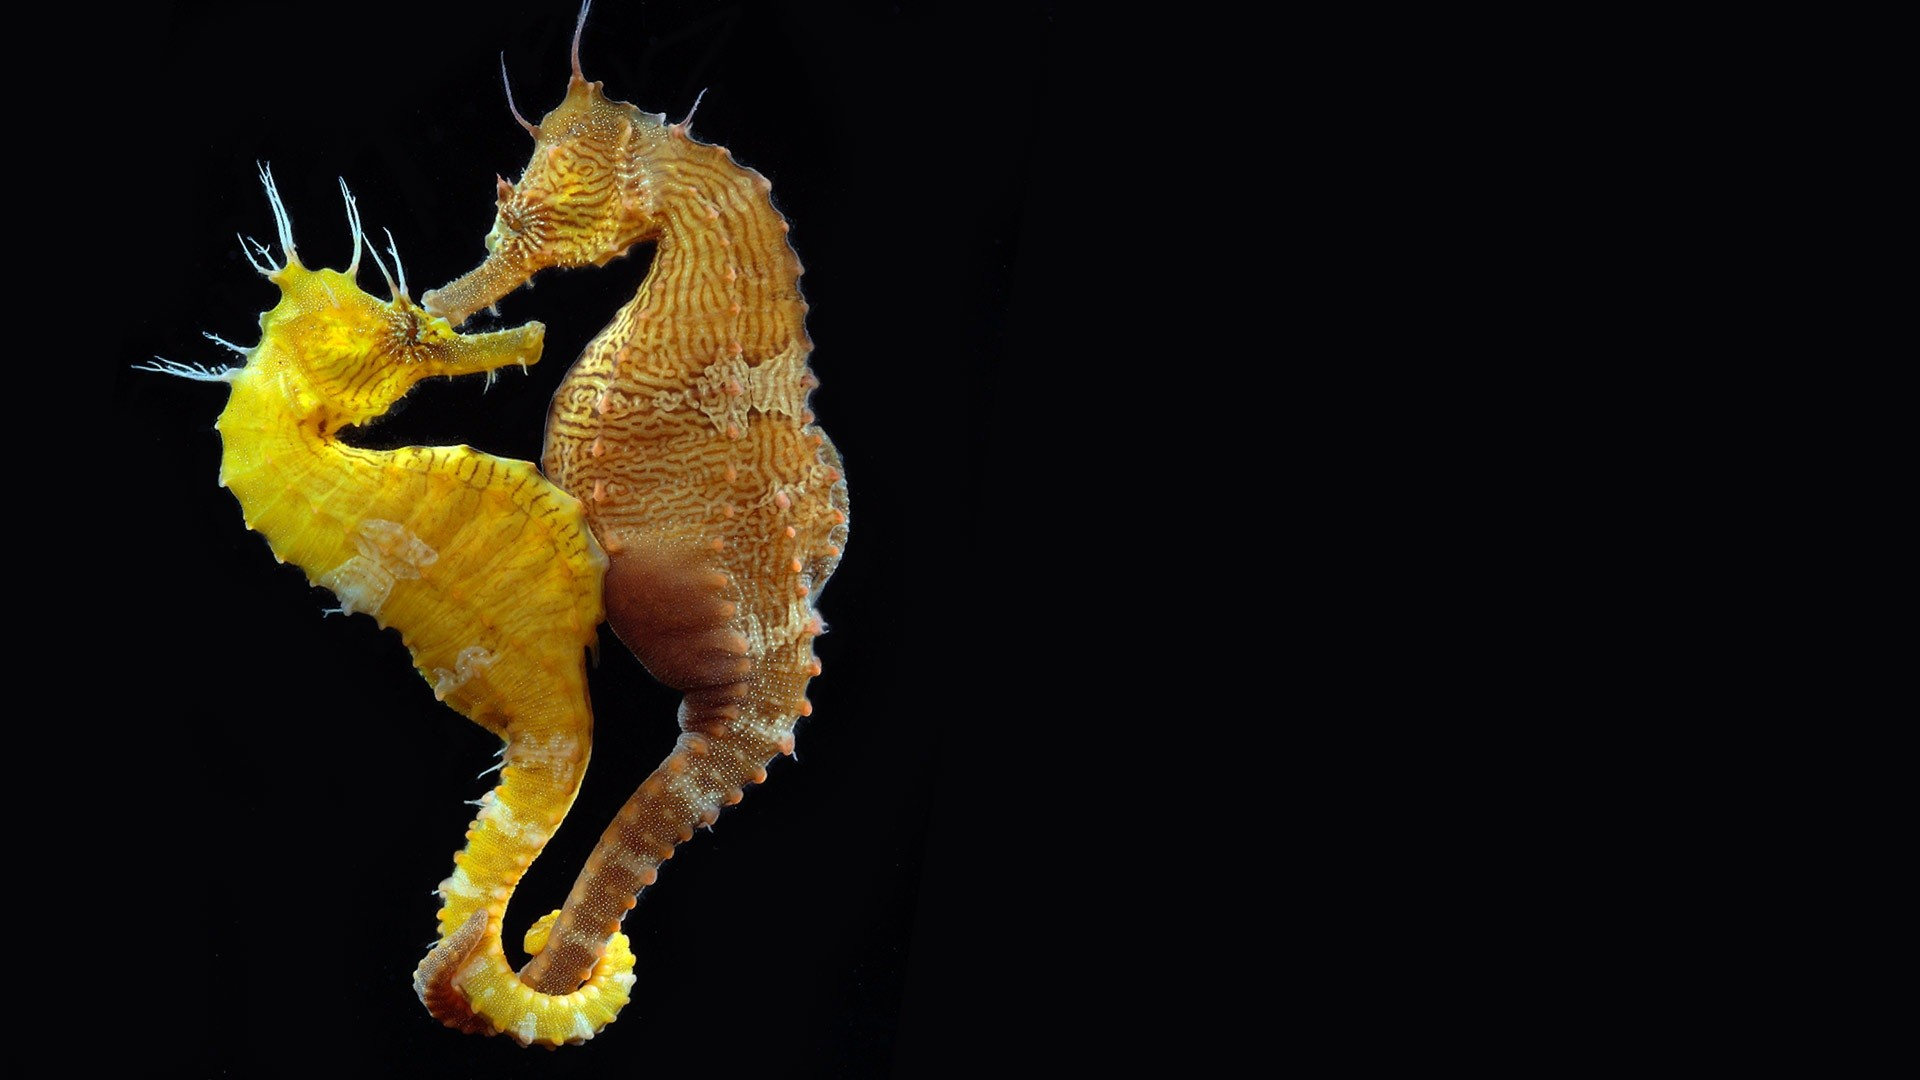 Res: 1920x1080, Lined Seahorse image Wallpaper